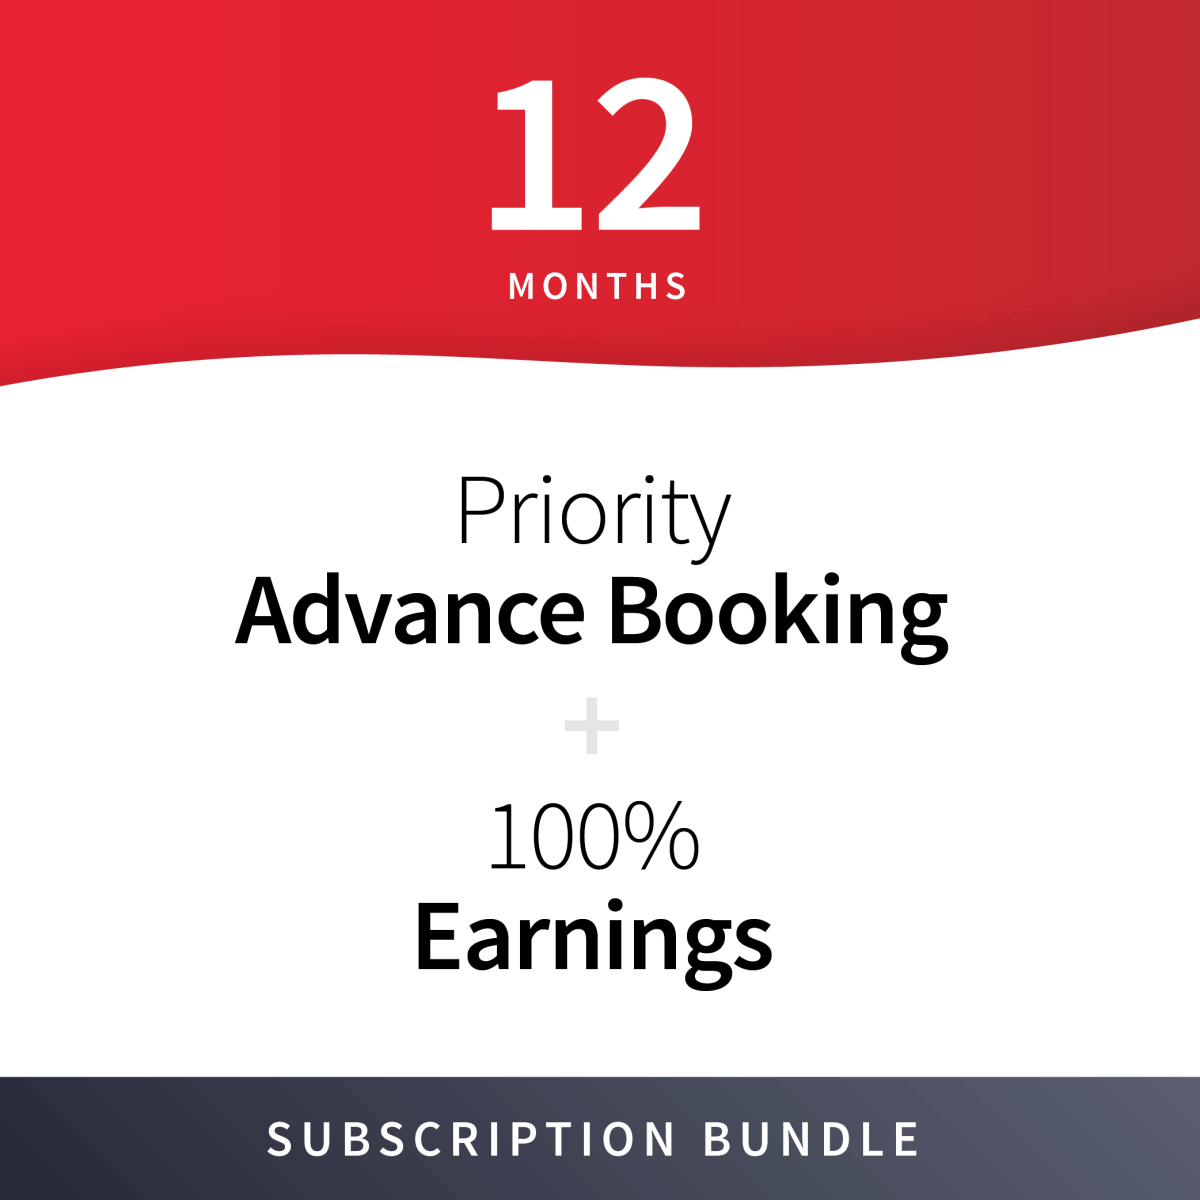 100% Earnings + Priority Advance Booking Subscription Bundle - 12 Months 4